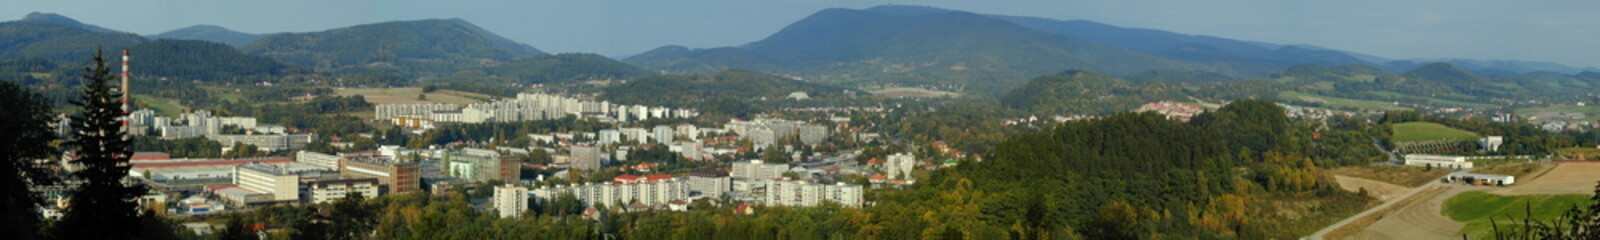 Panorama of city Roznov pod Radhostem, Czech Republic